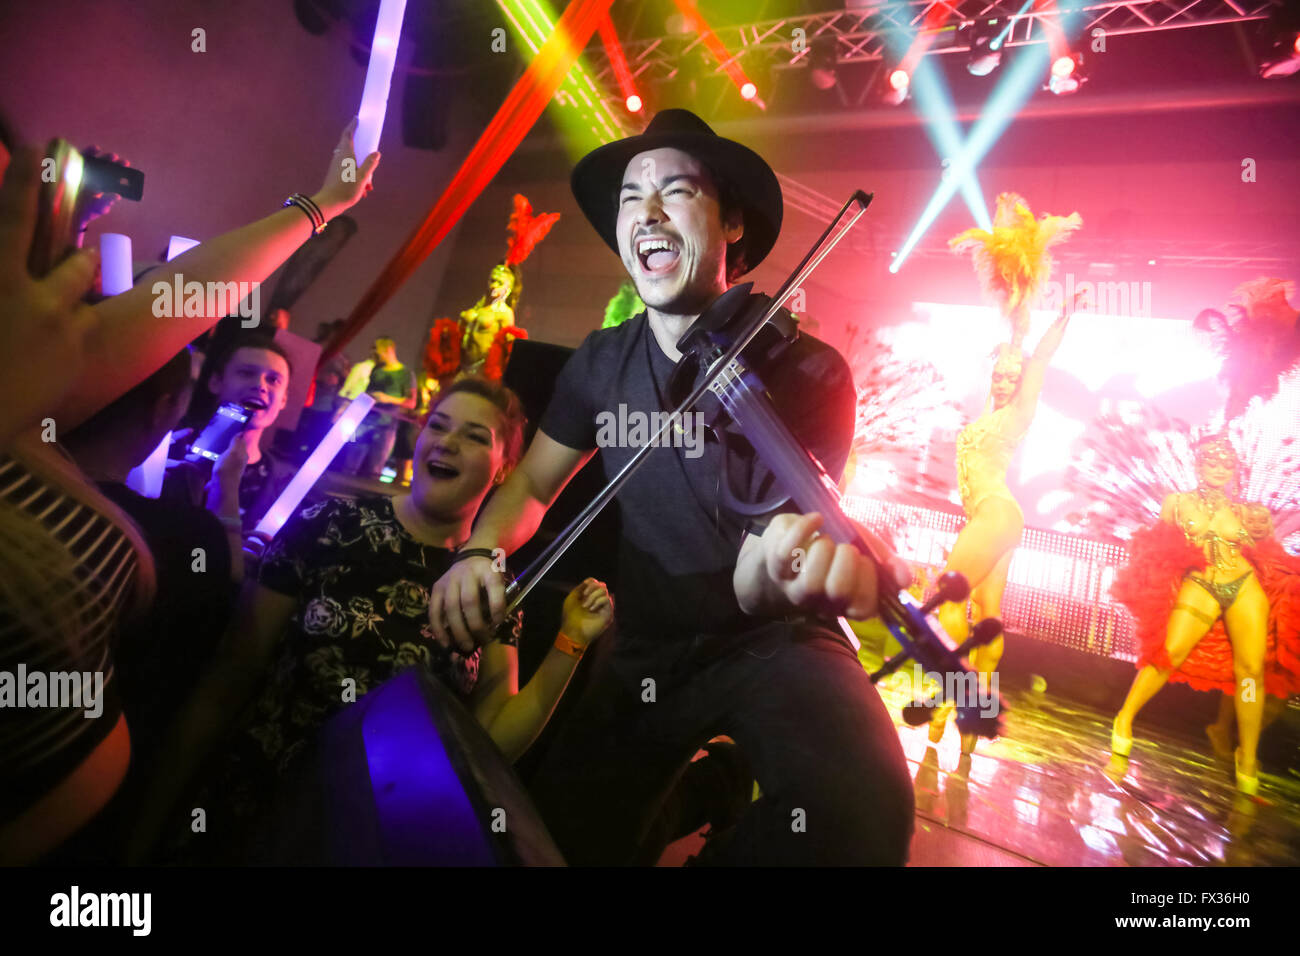 Zagreb, Croatia. 9th April, 2016. : The famous violinist Miguel Lara performing on La Fiesta Stage by Sensation - Stock Image